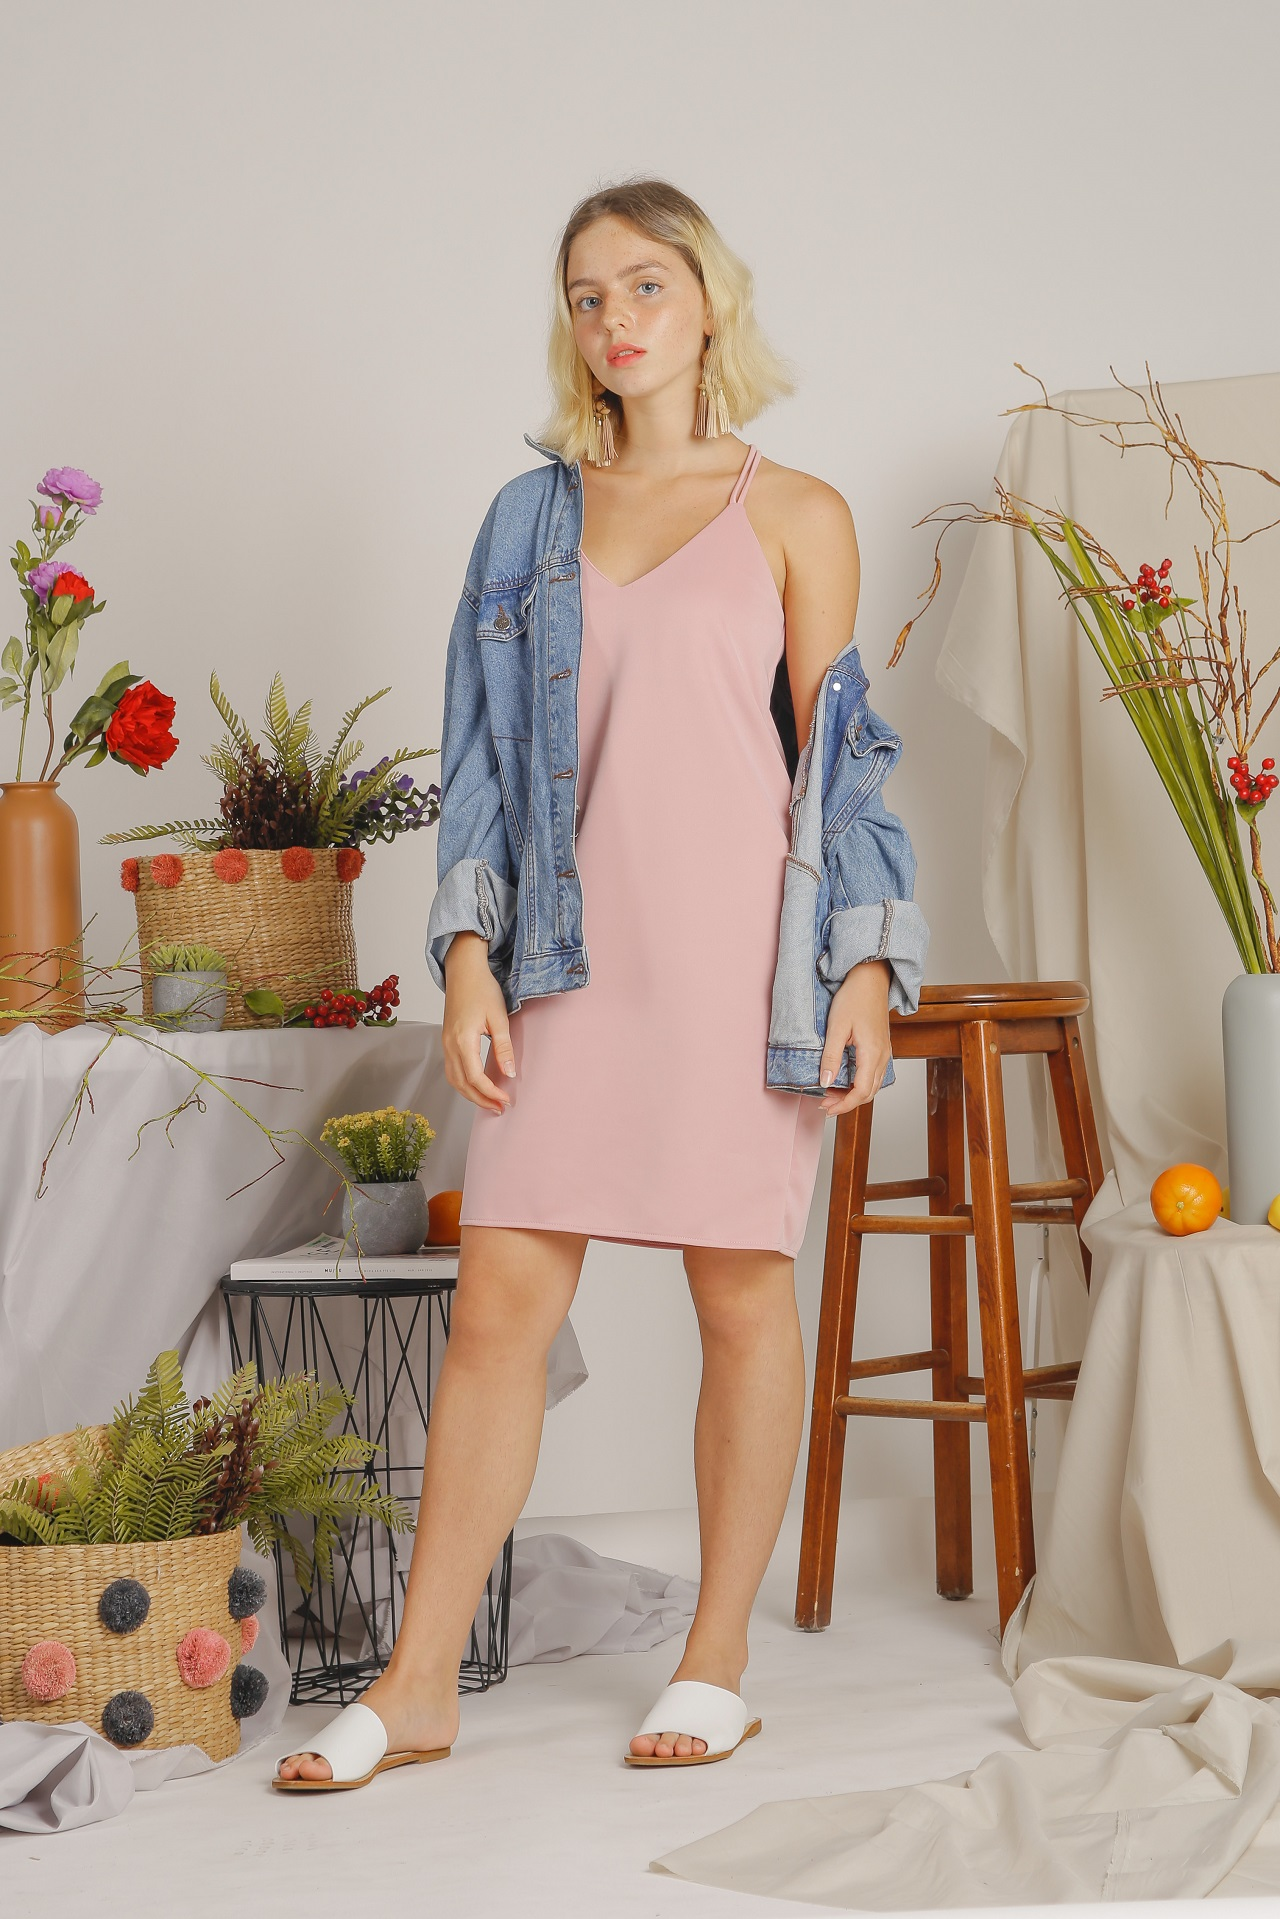 A girl wearing a dress, a denim jacket, and sandals